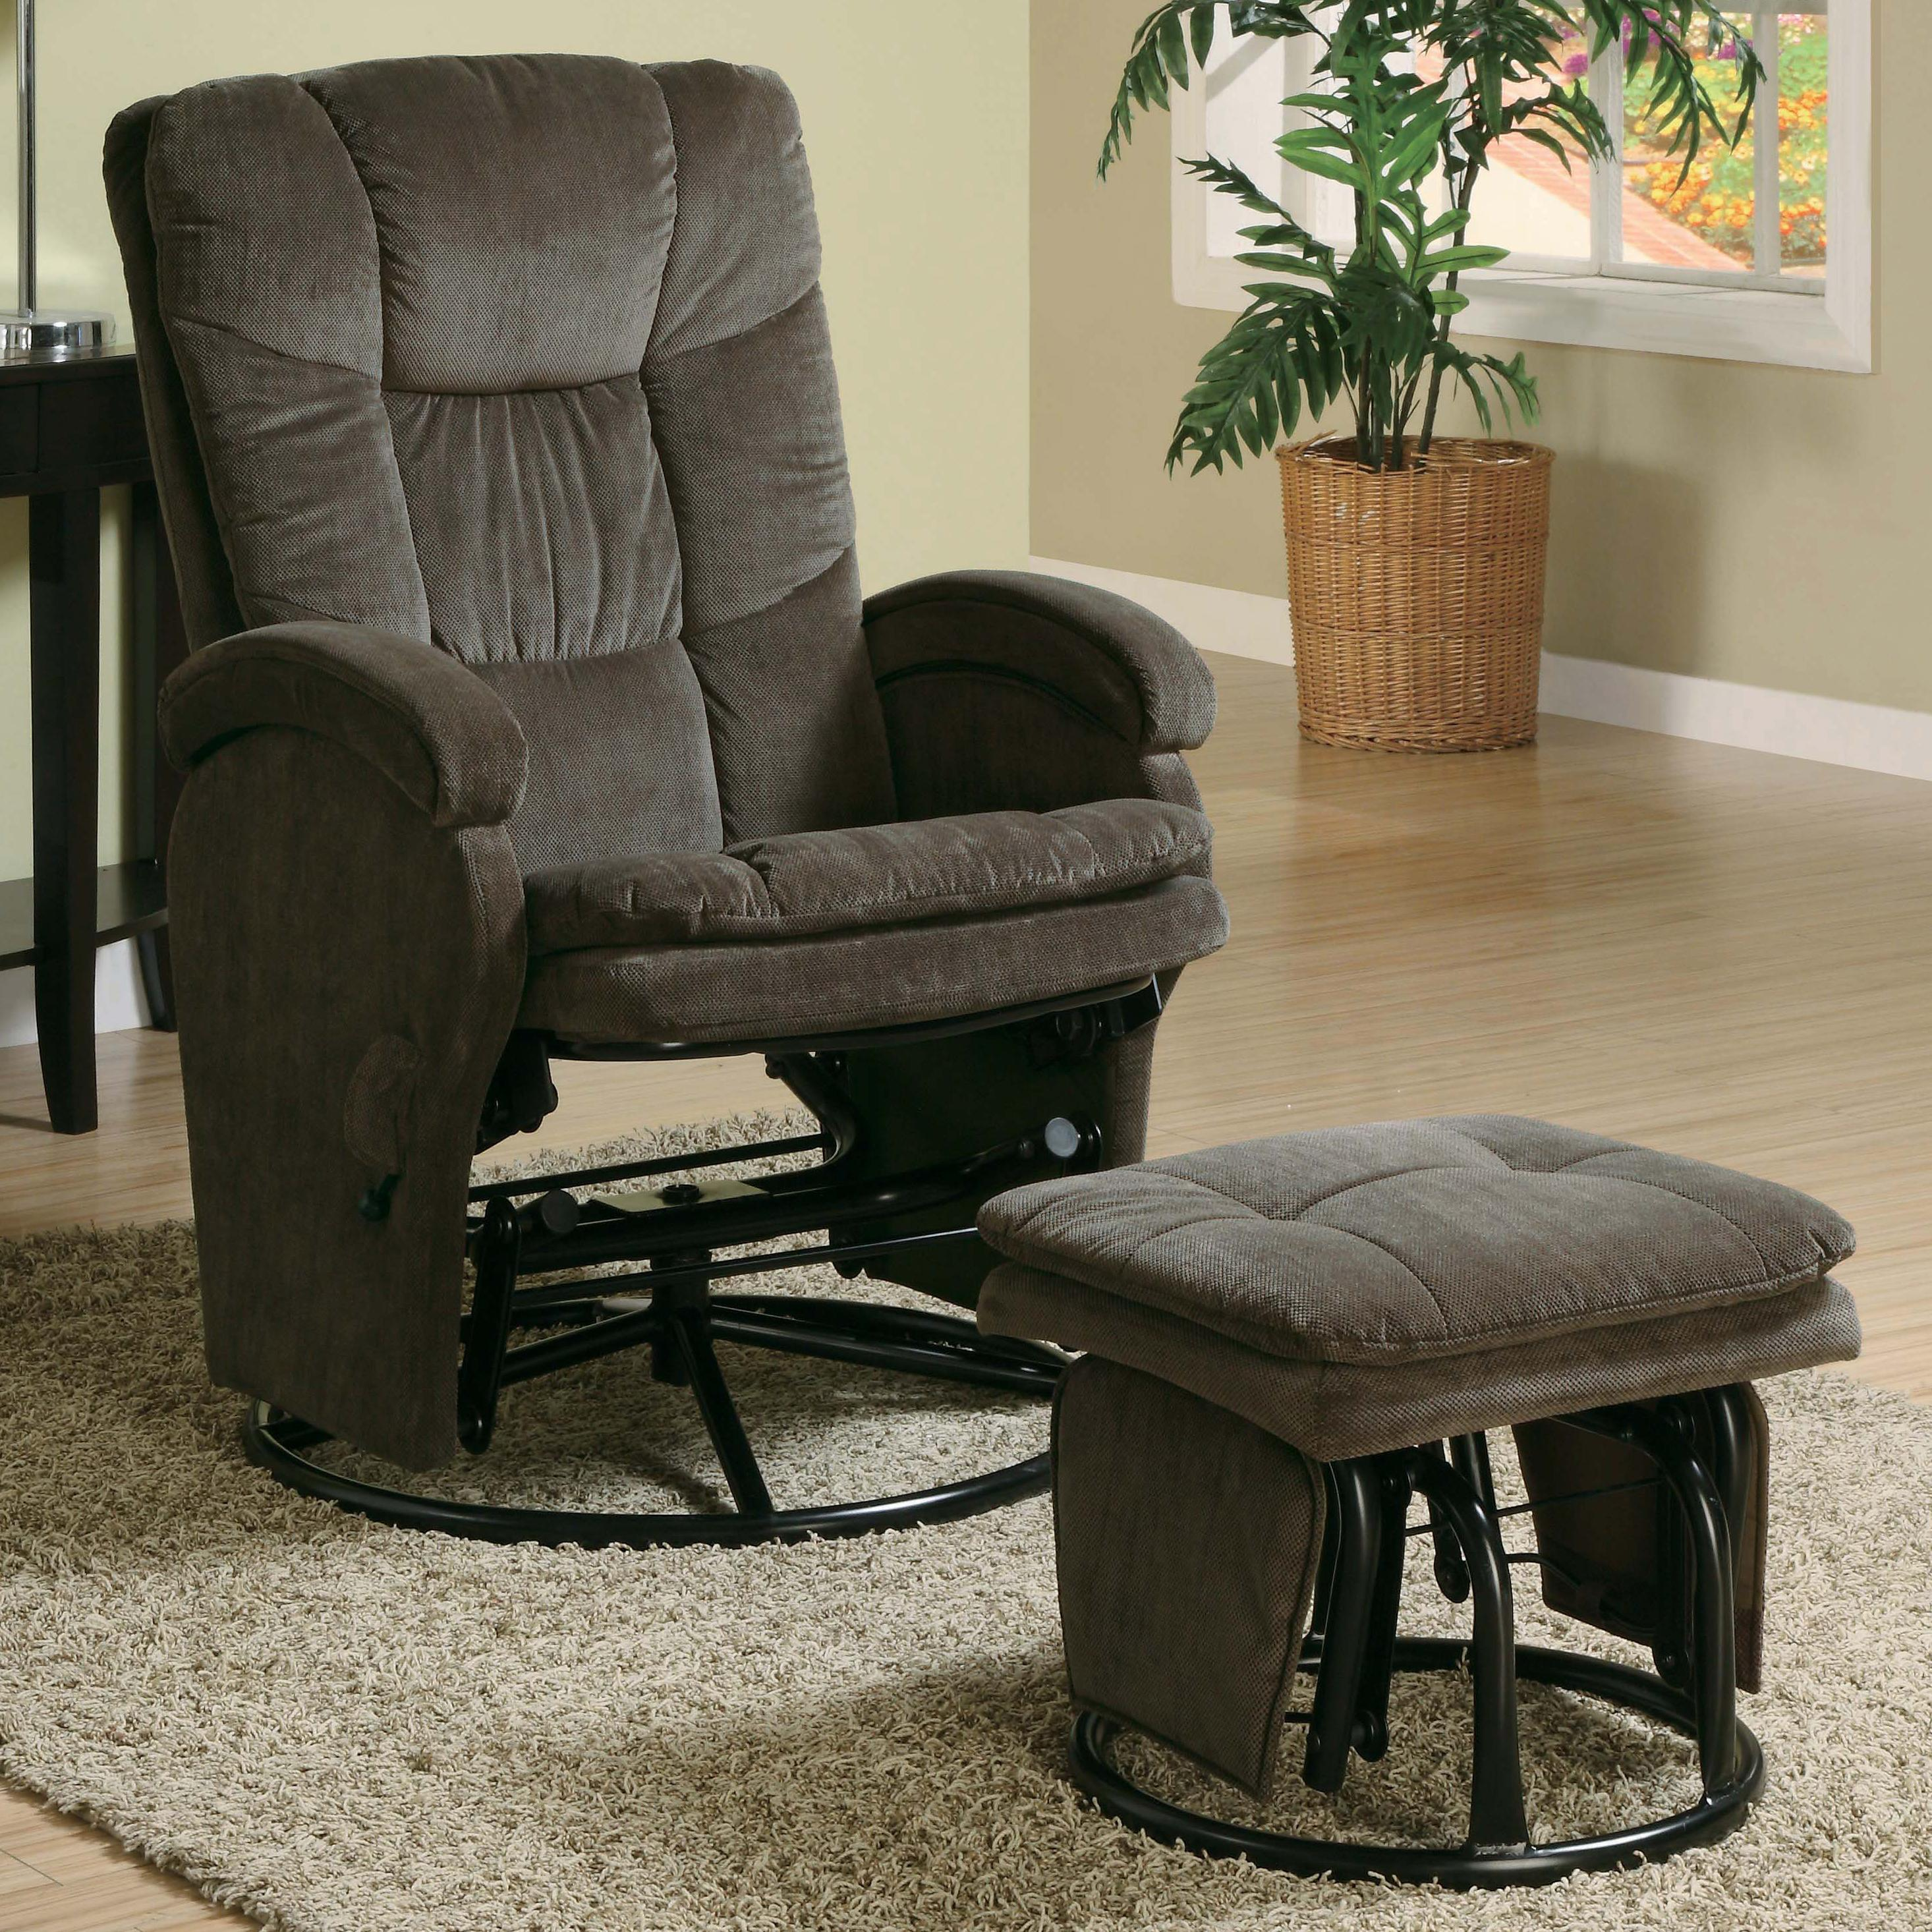 Delicieux Coaster Recliners With Ottomans Glider Recliner With Ottoman   Item Number:  600159